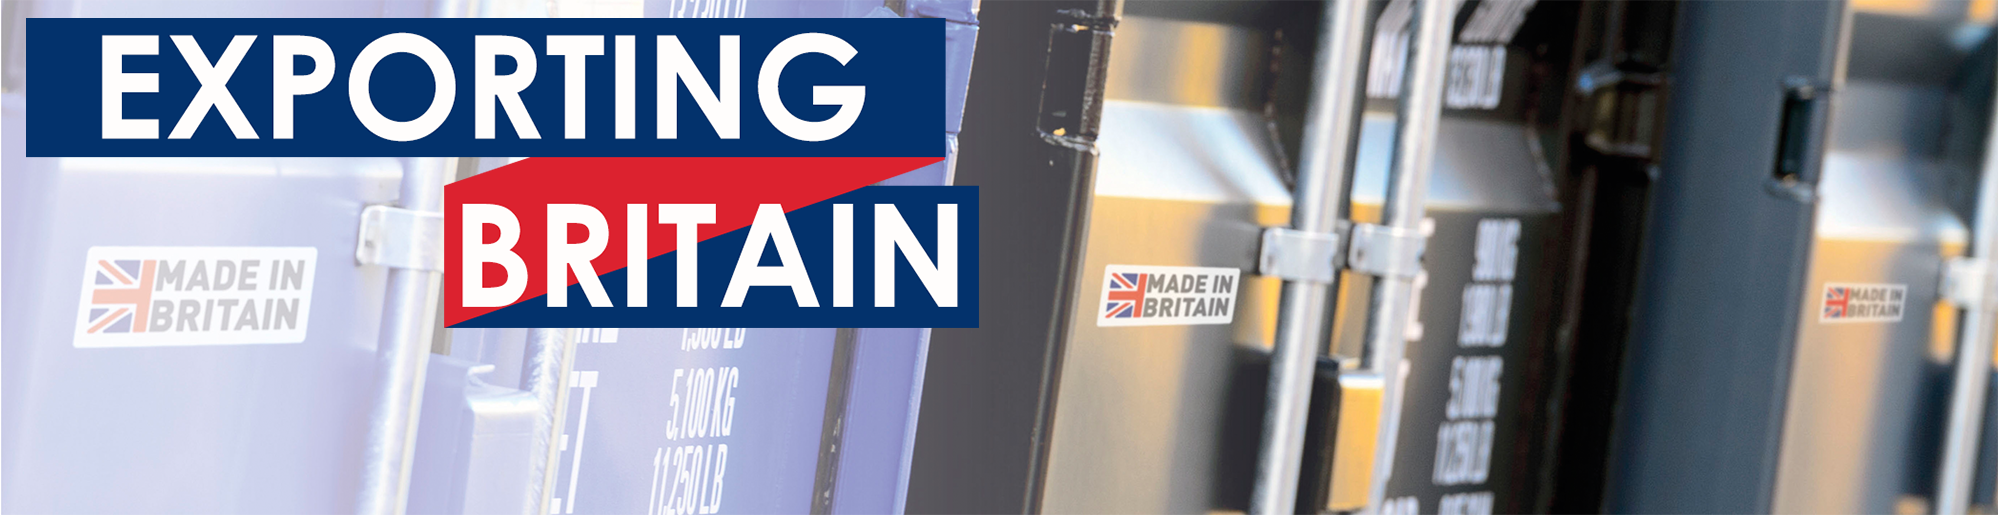 logo, free British marketing material, free membership, free promotional logo, Made in Britain, British pride, free logo, MiB logo, Britain, Made in Britain logo, Made in Britain campaign, exporting British trade, exporting Britain, export British products, british exports